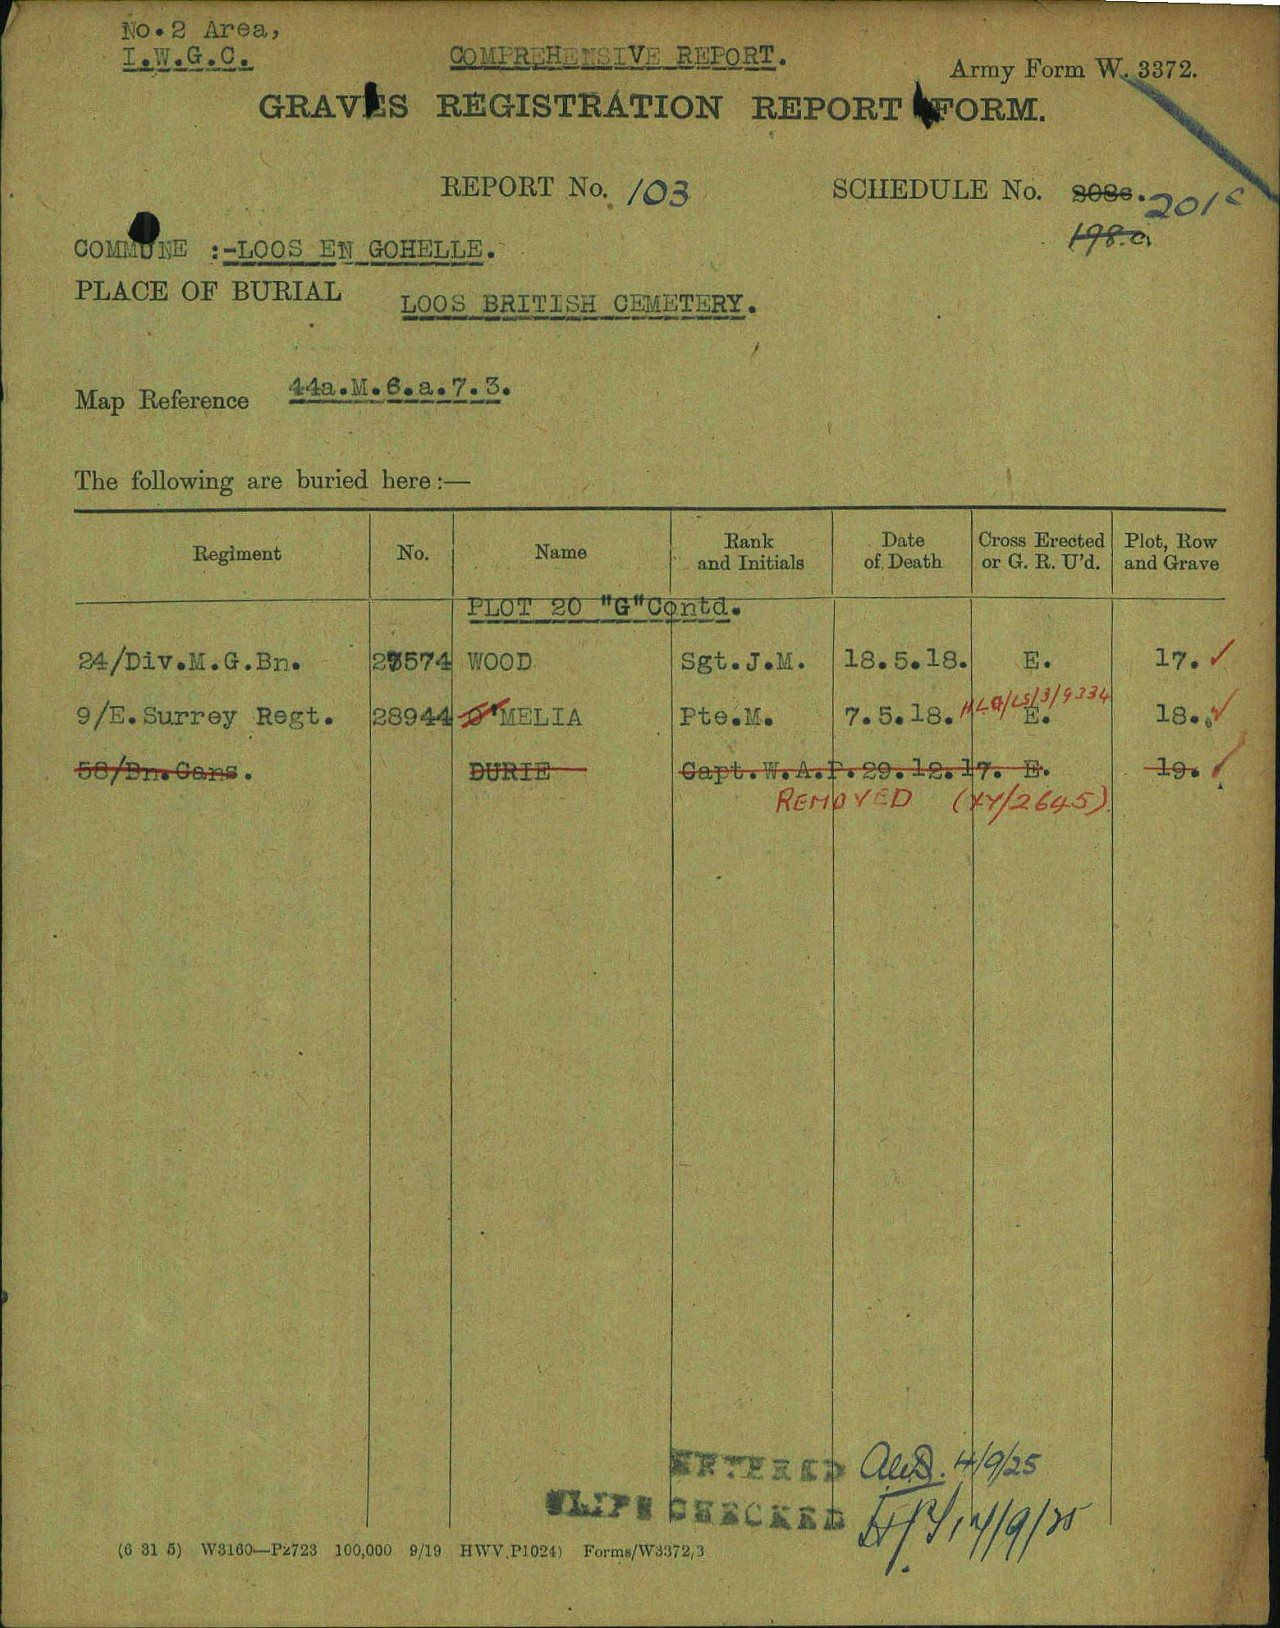 """Document– """"Graves Registration Report Form"""" report from the Commonwealth War Graves Commission files showing that Captain Durie had was being buried in the Loos British Cemetery (Grid 44a.M6.a.7.3) in Plot 20 Row C Grave 19. It was during this process that the family of Captain Durie removed his body from the """"zinc lined coffin"""" and repatriated it to Canada. The story says that the CWGC were not aware that the body had been removed from the coffin until the repatriation and reburial in Canada was reported in the newspaper. It would appear from this GRRF that the CWGC thereafter removed the empty coffin."""